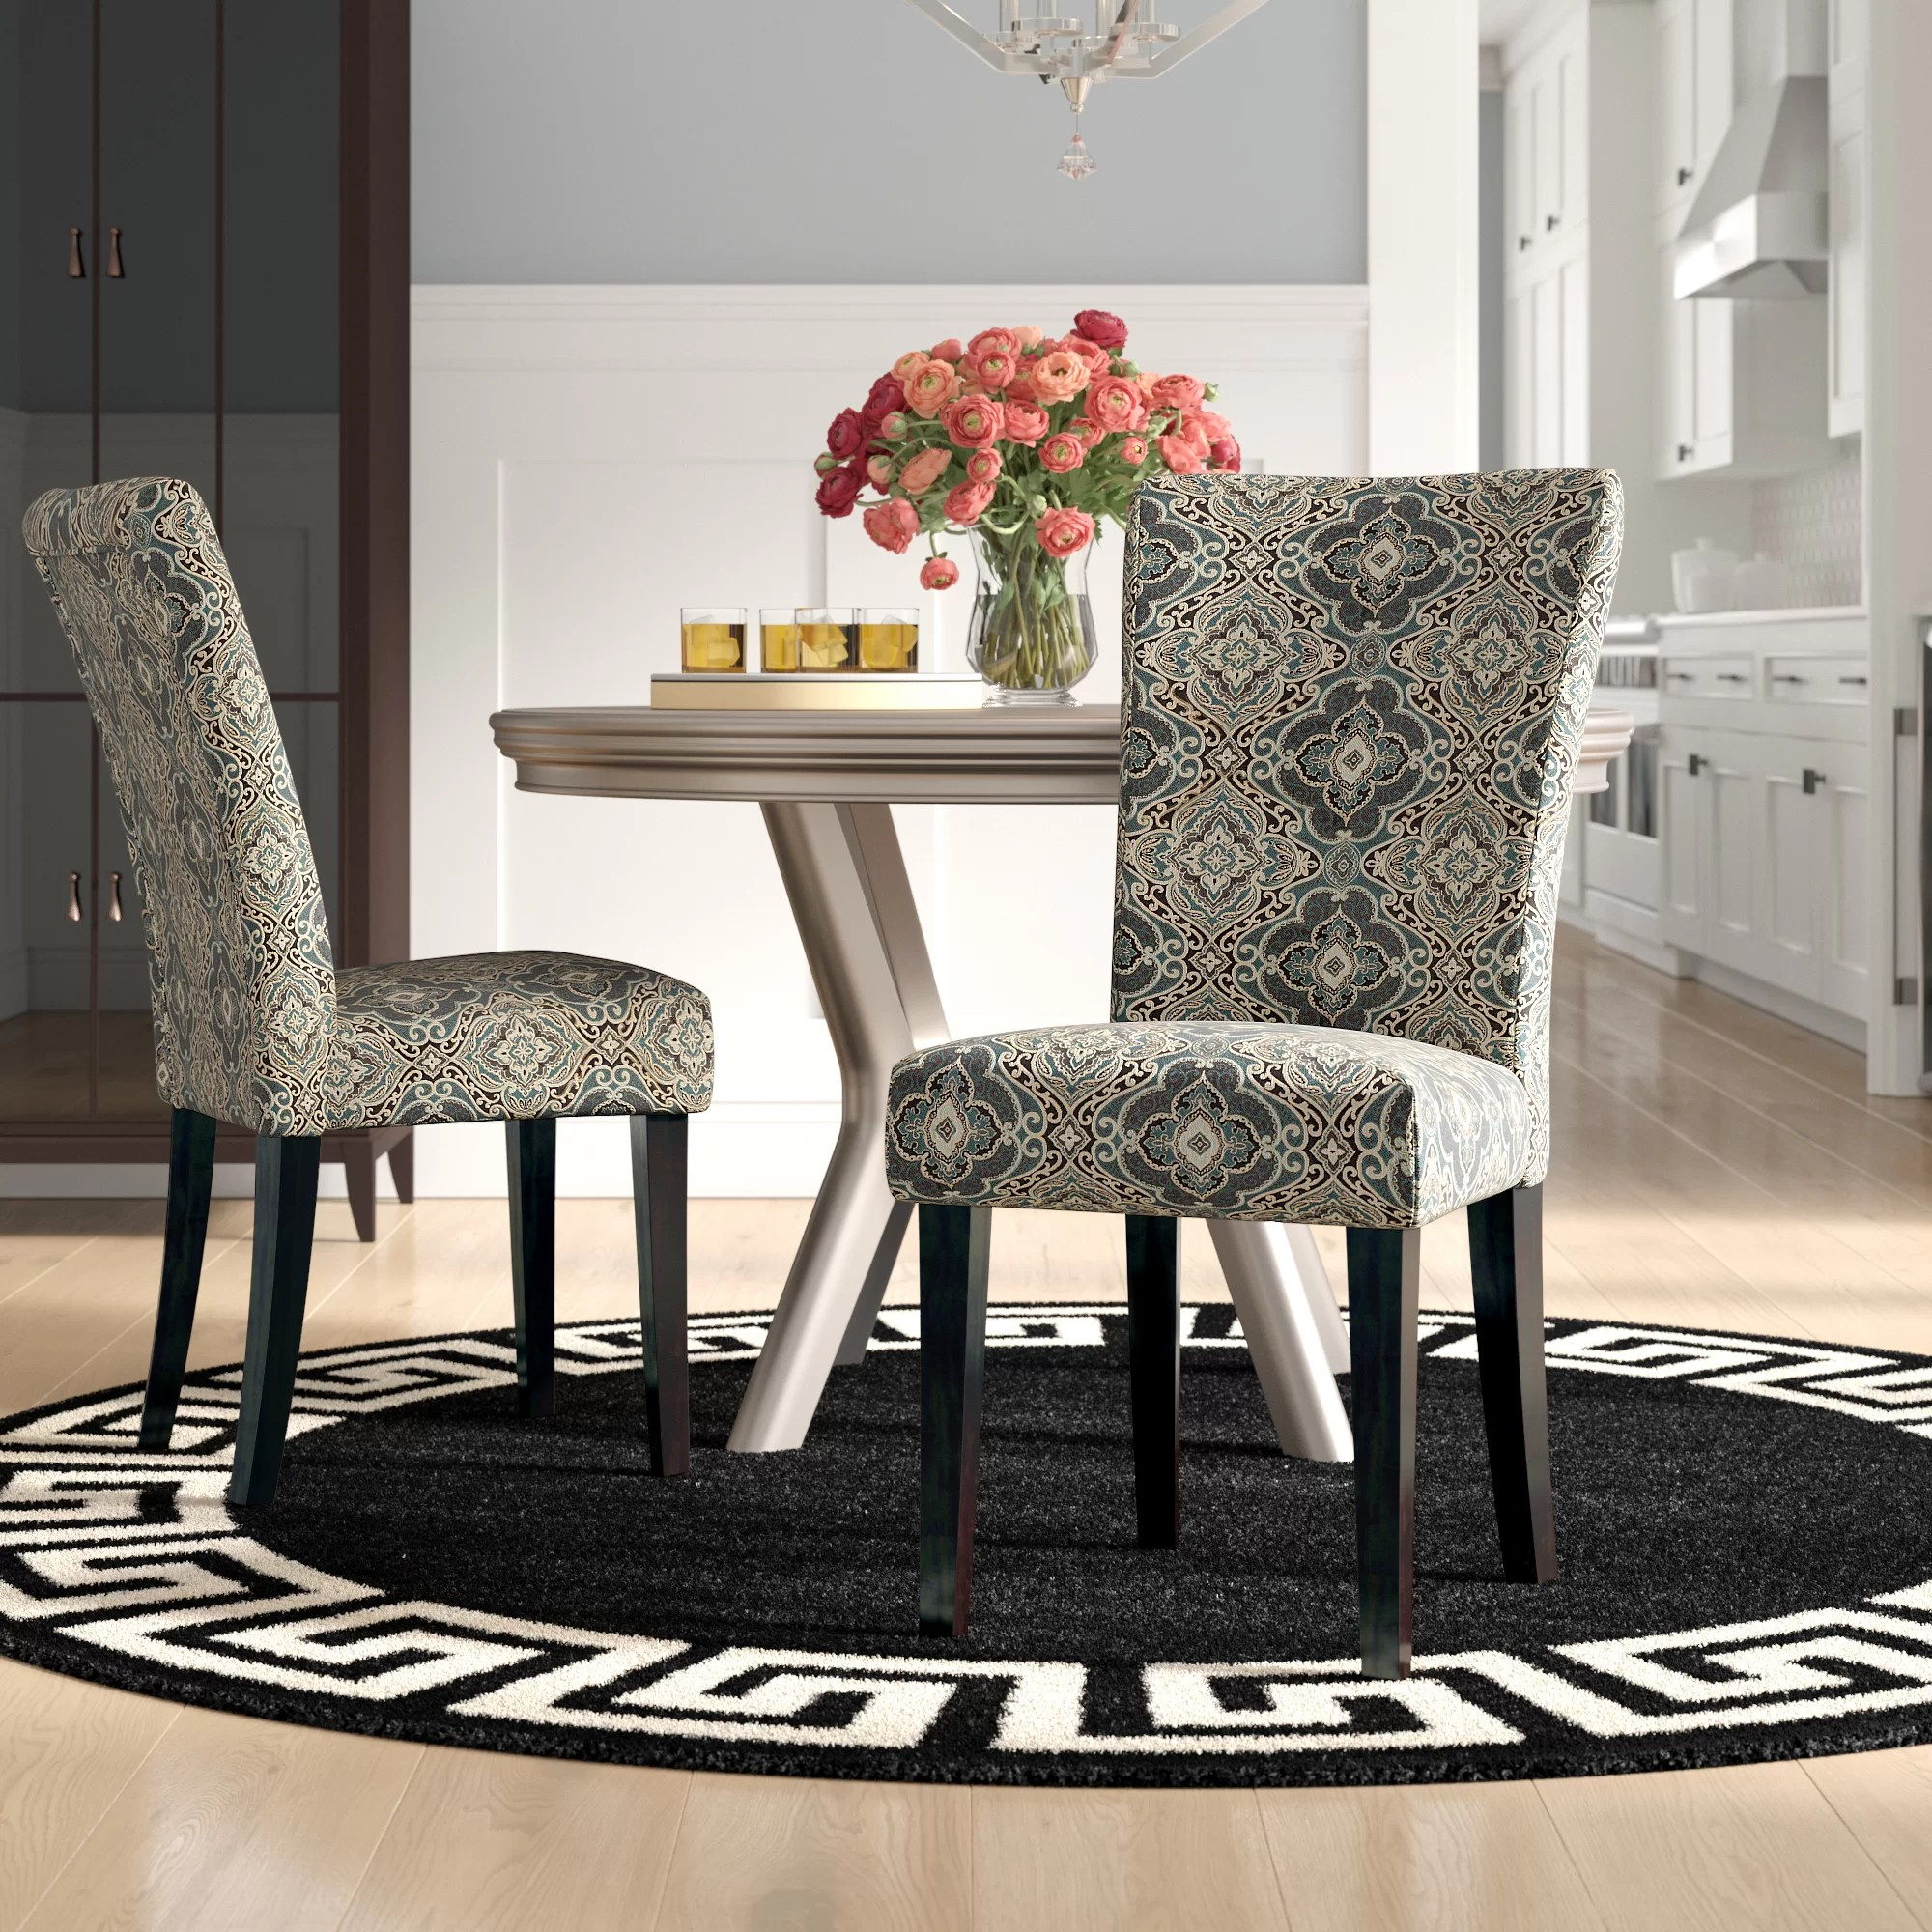 Damask Chair Sture Damask Upholstered Dining Chair